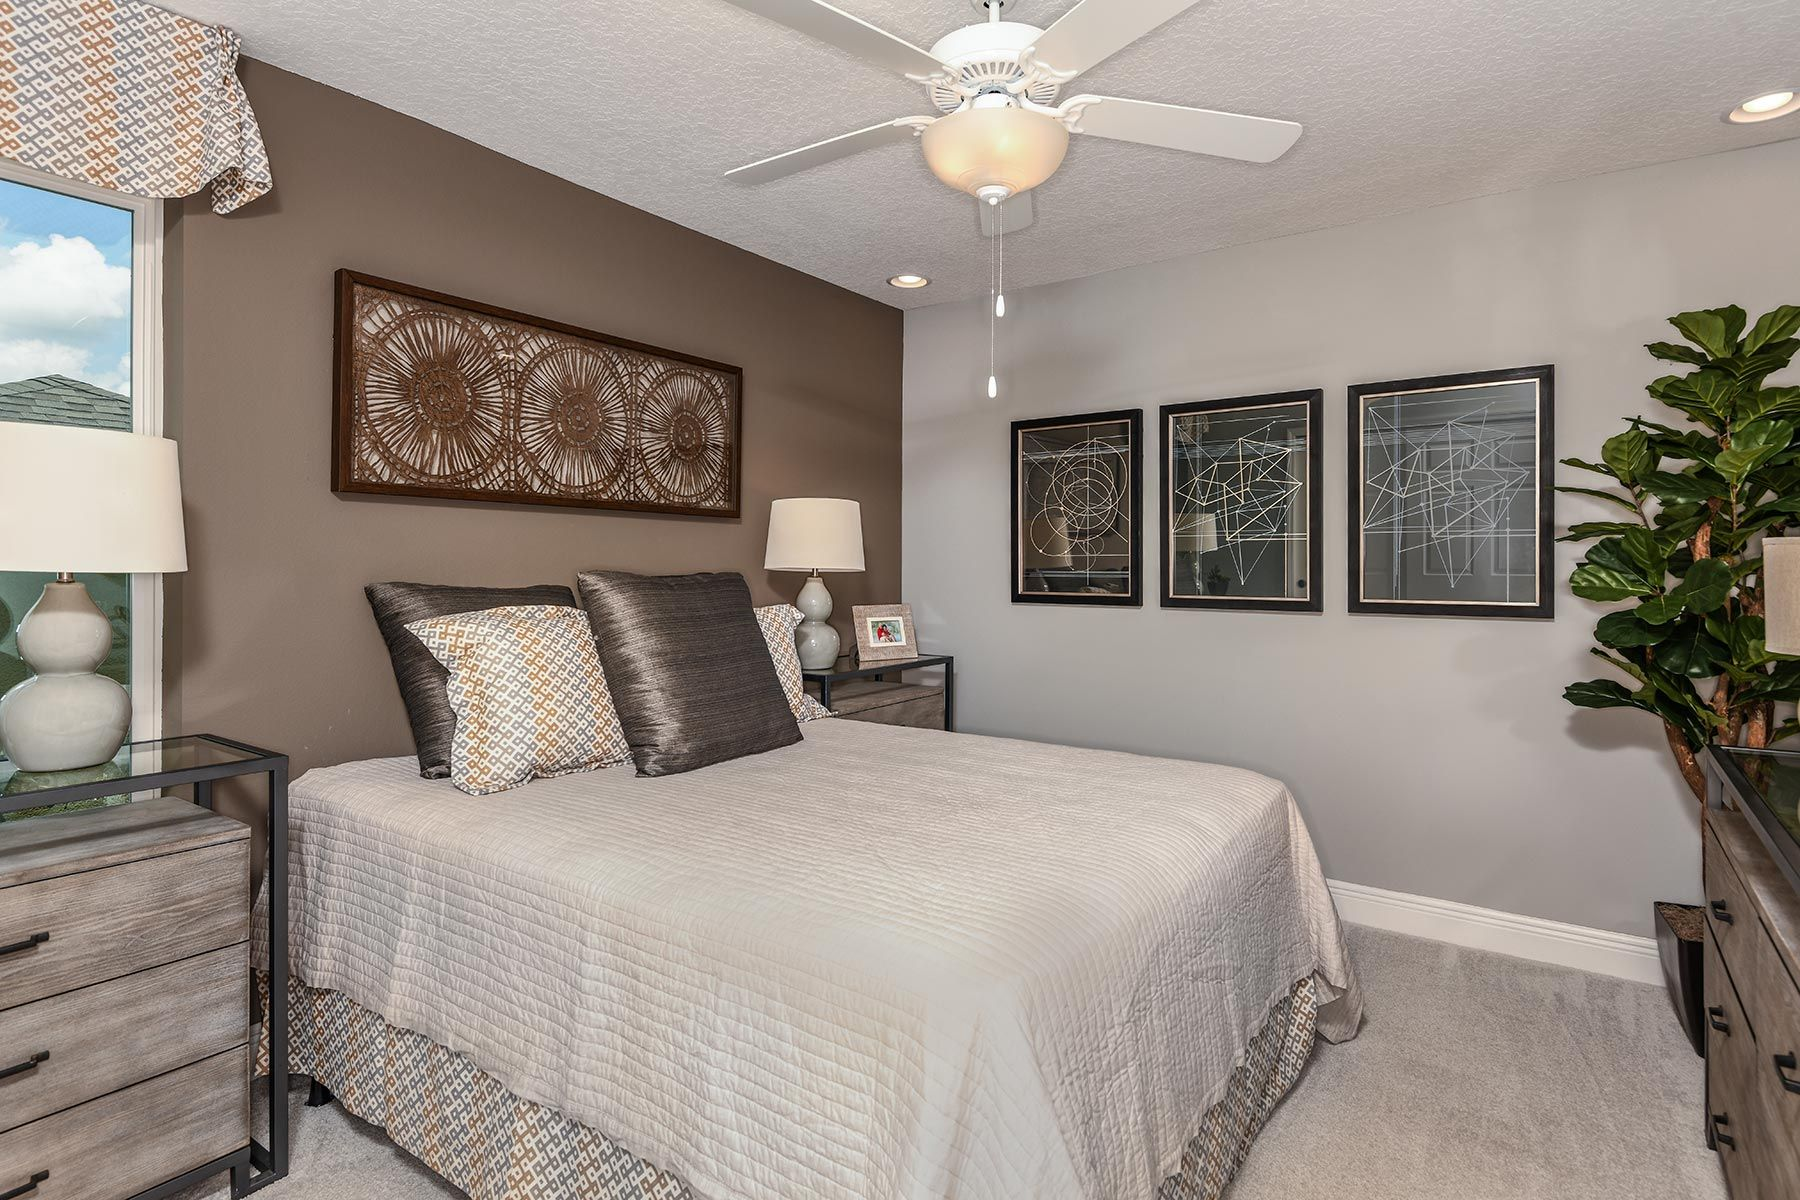 Bedroom featured in the Riverside II By Mattamy Homes in Orlando, FL